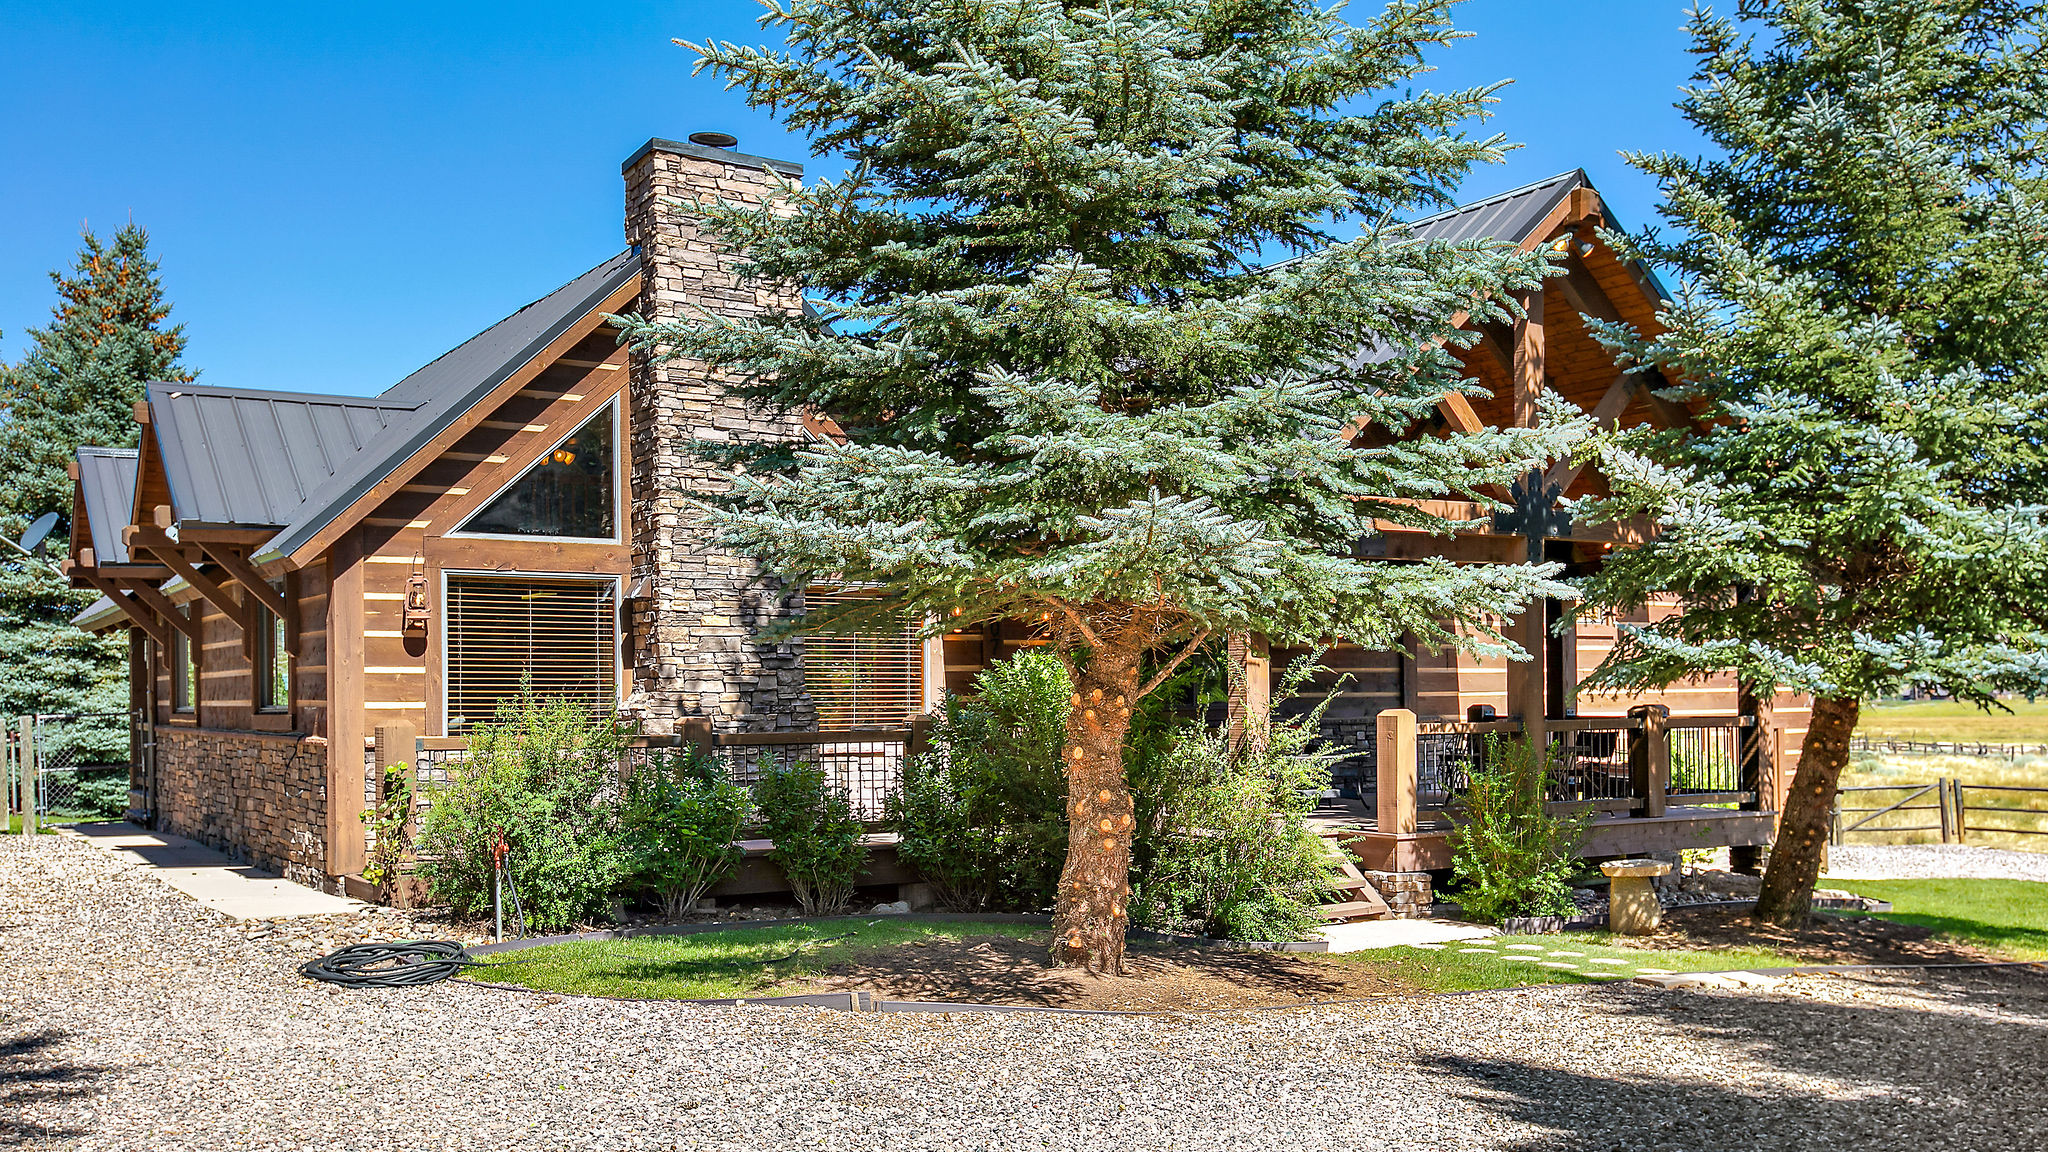 Pine Meadows in the Mountains - Cabins for Rent in Pine ...